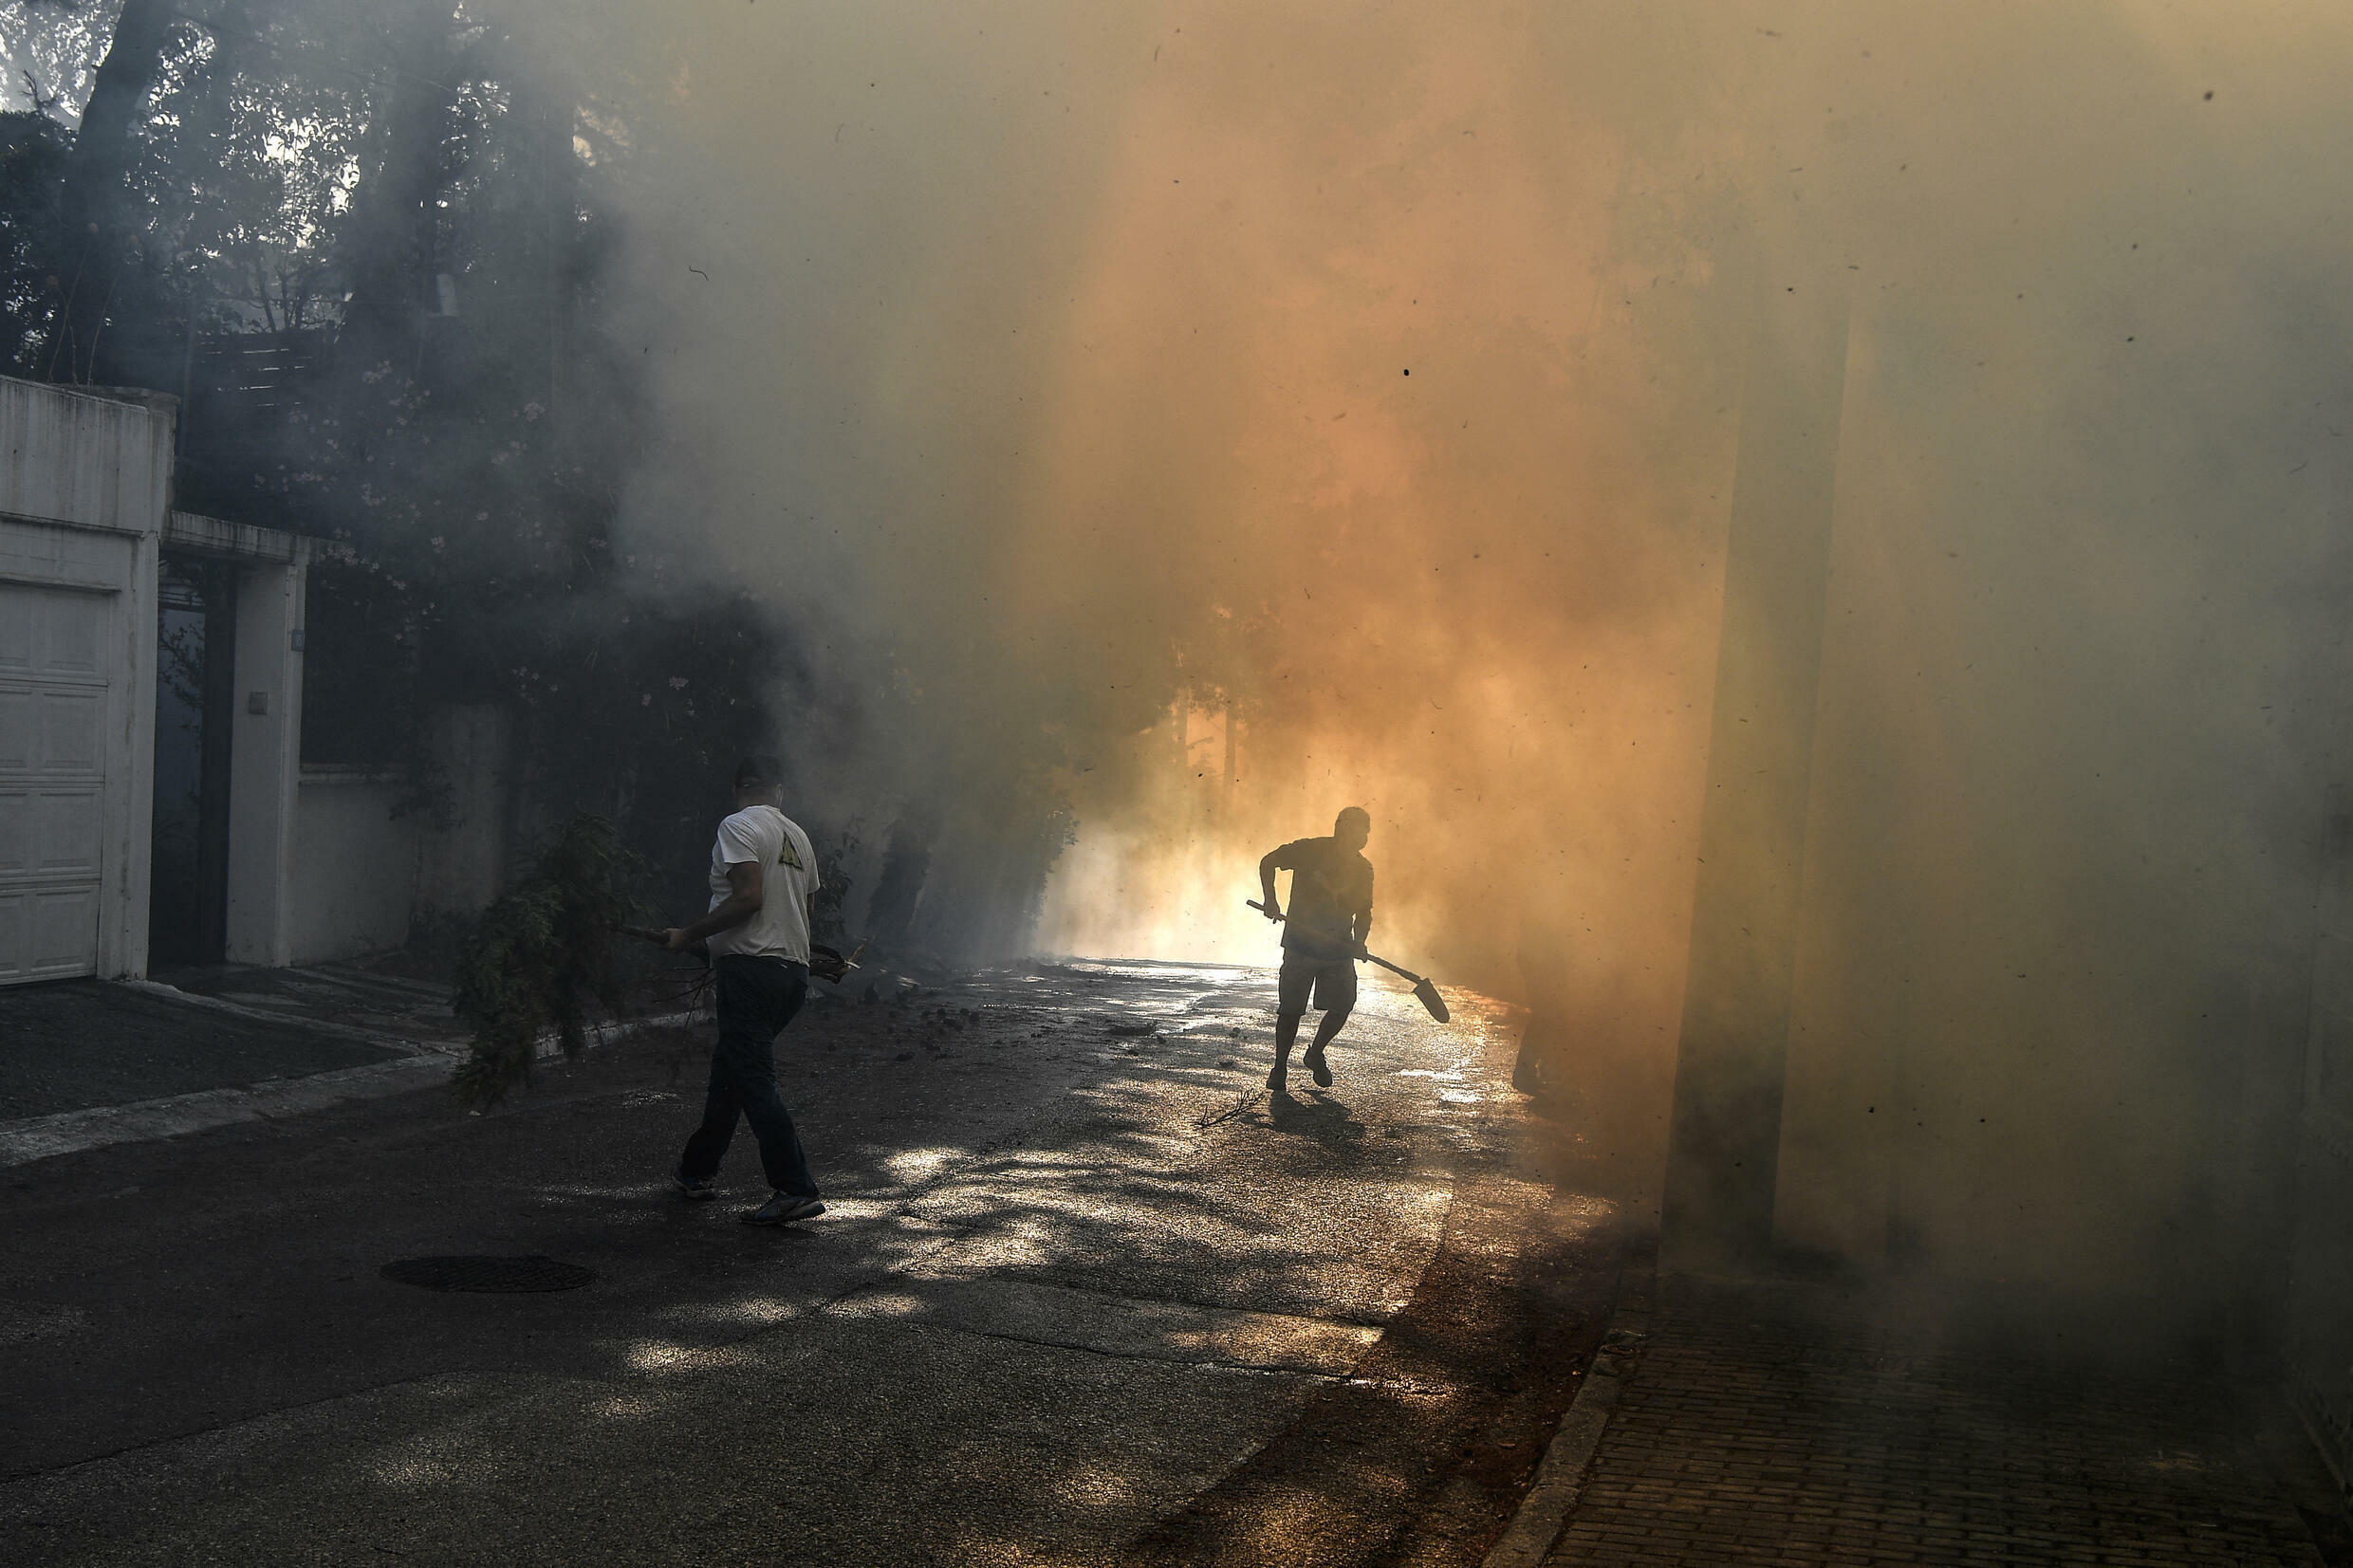 A local resident runs to fight a fire in Thrakomakedones, near Mount Parnitha, north of Athens, on August 7, 2021.